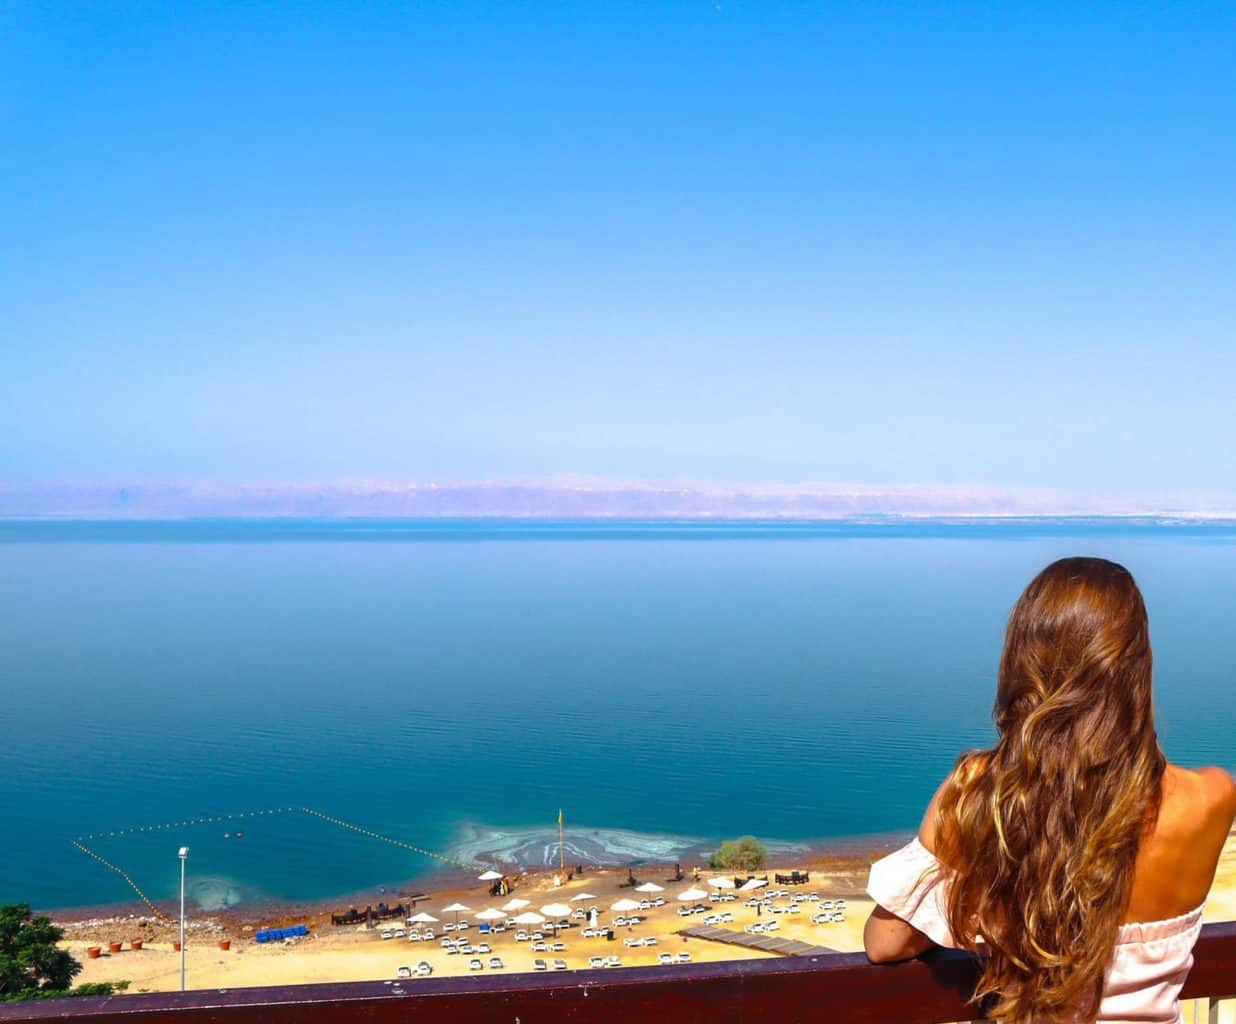 where to stay in the Dead Sea